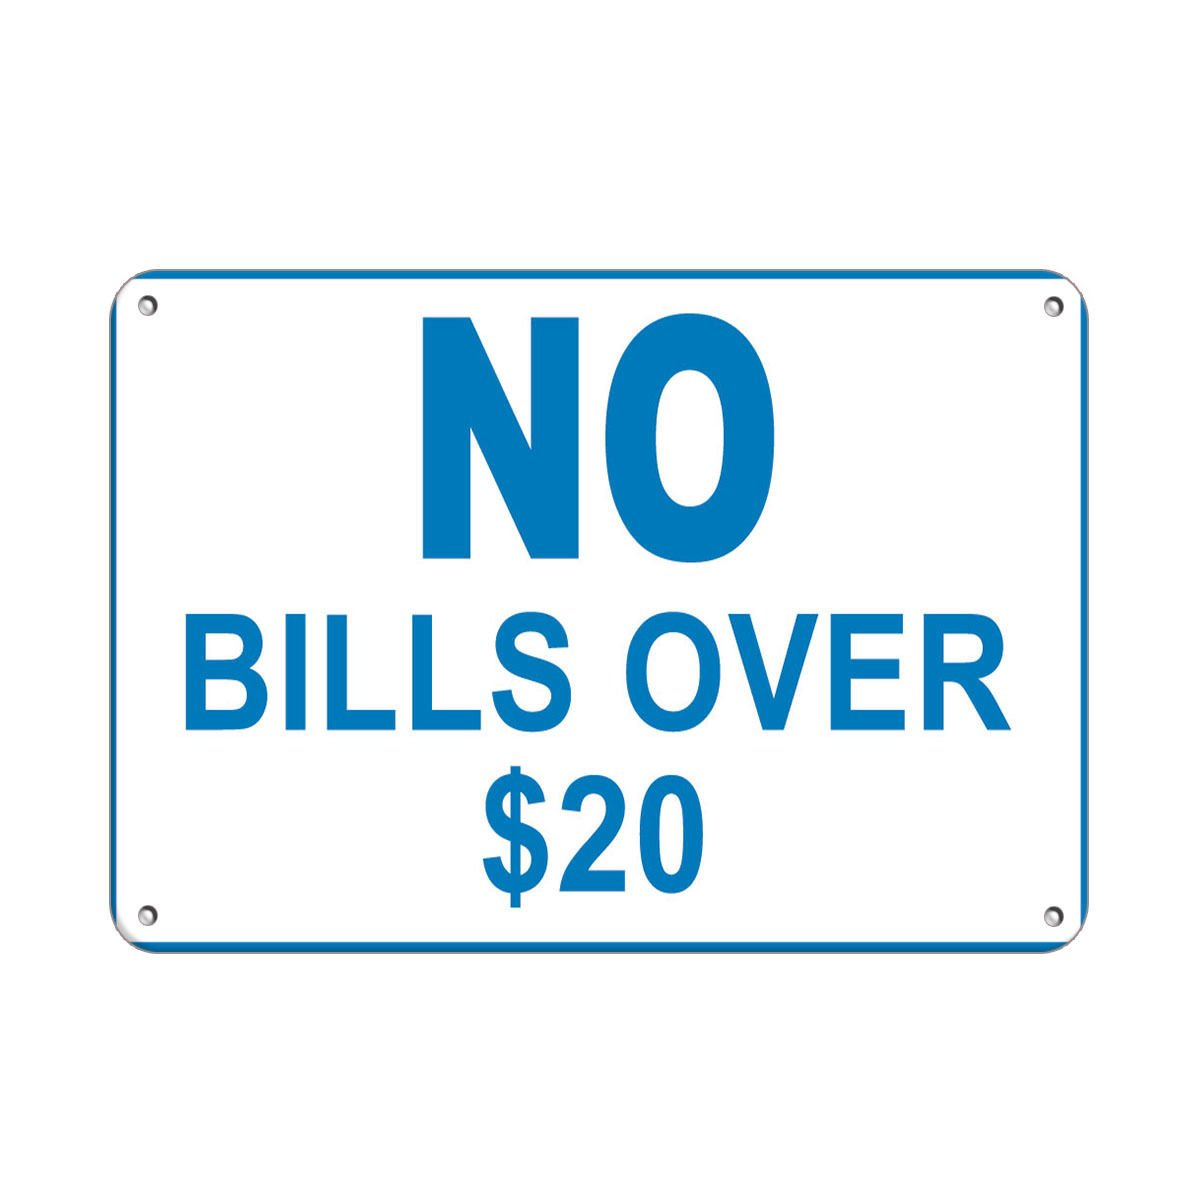 No Bills Over $20 Business Sign STore Policy LABEL DECAL STICKER Sticks to Any Surface 10x7